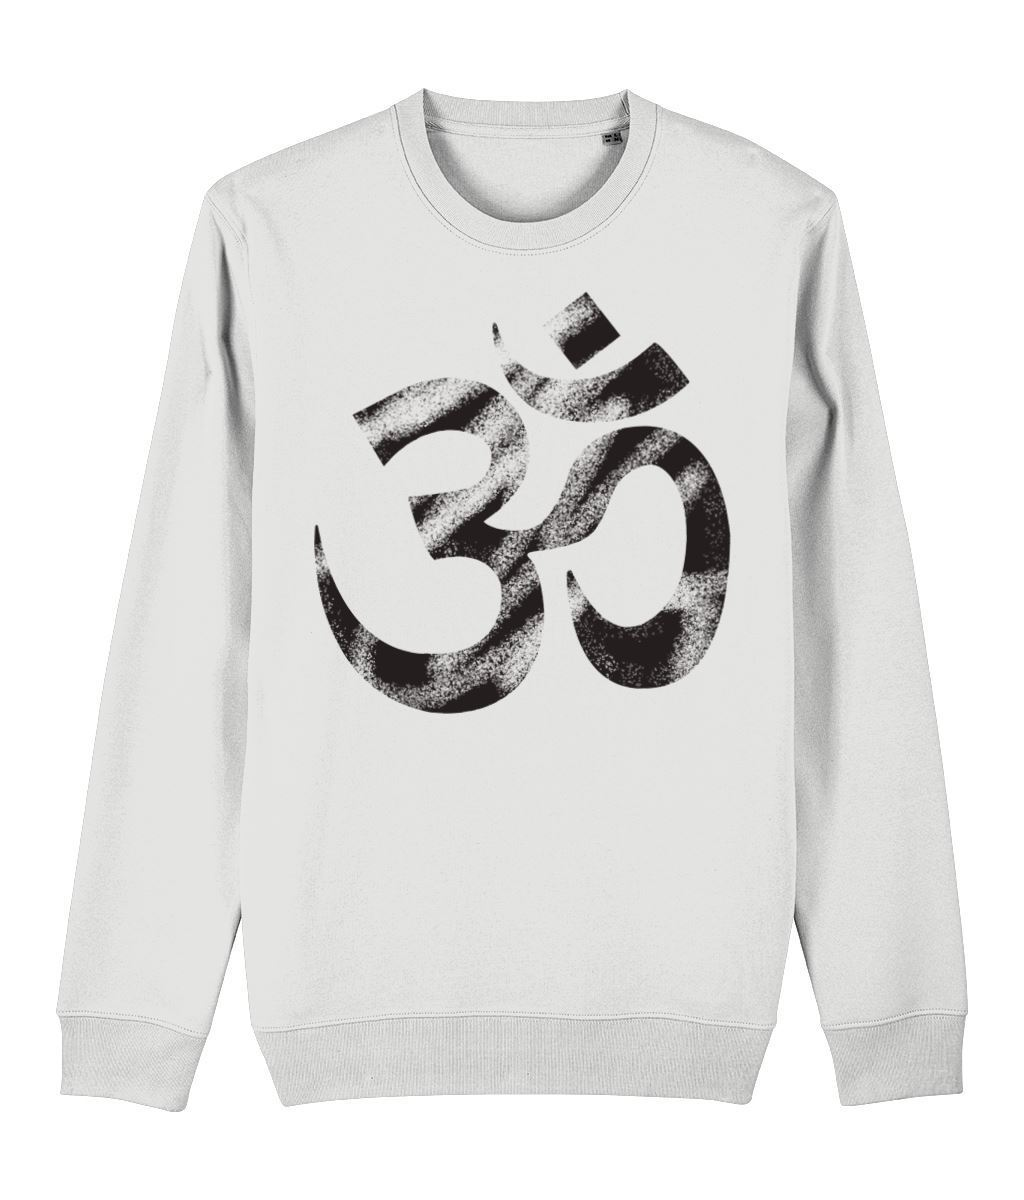 OM Sweatshirt Clothing IndianBelieves White X-Small